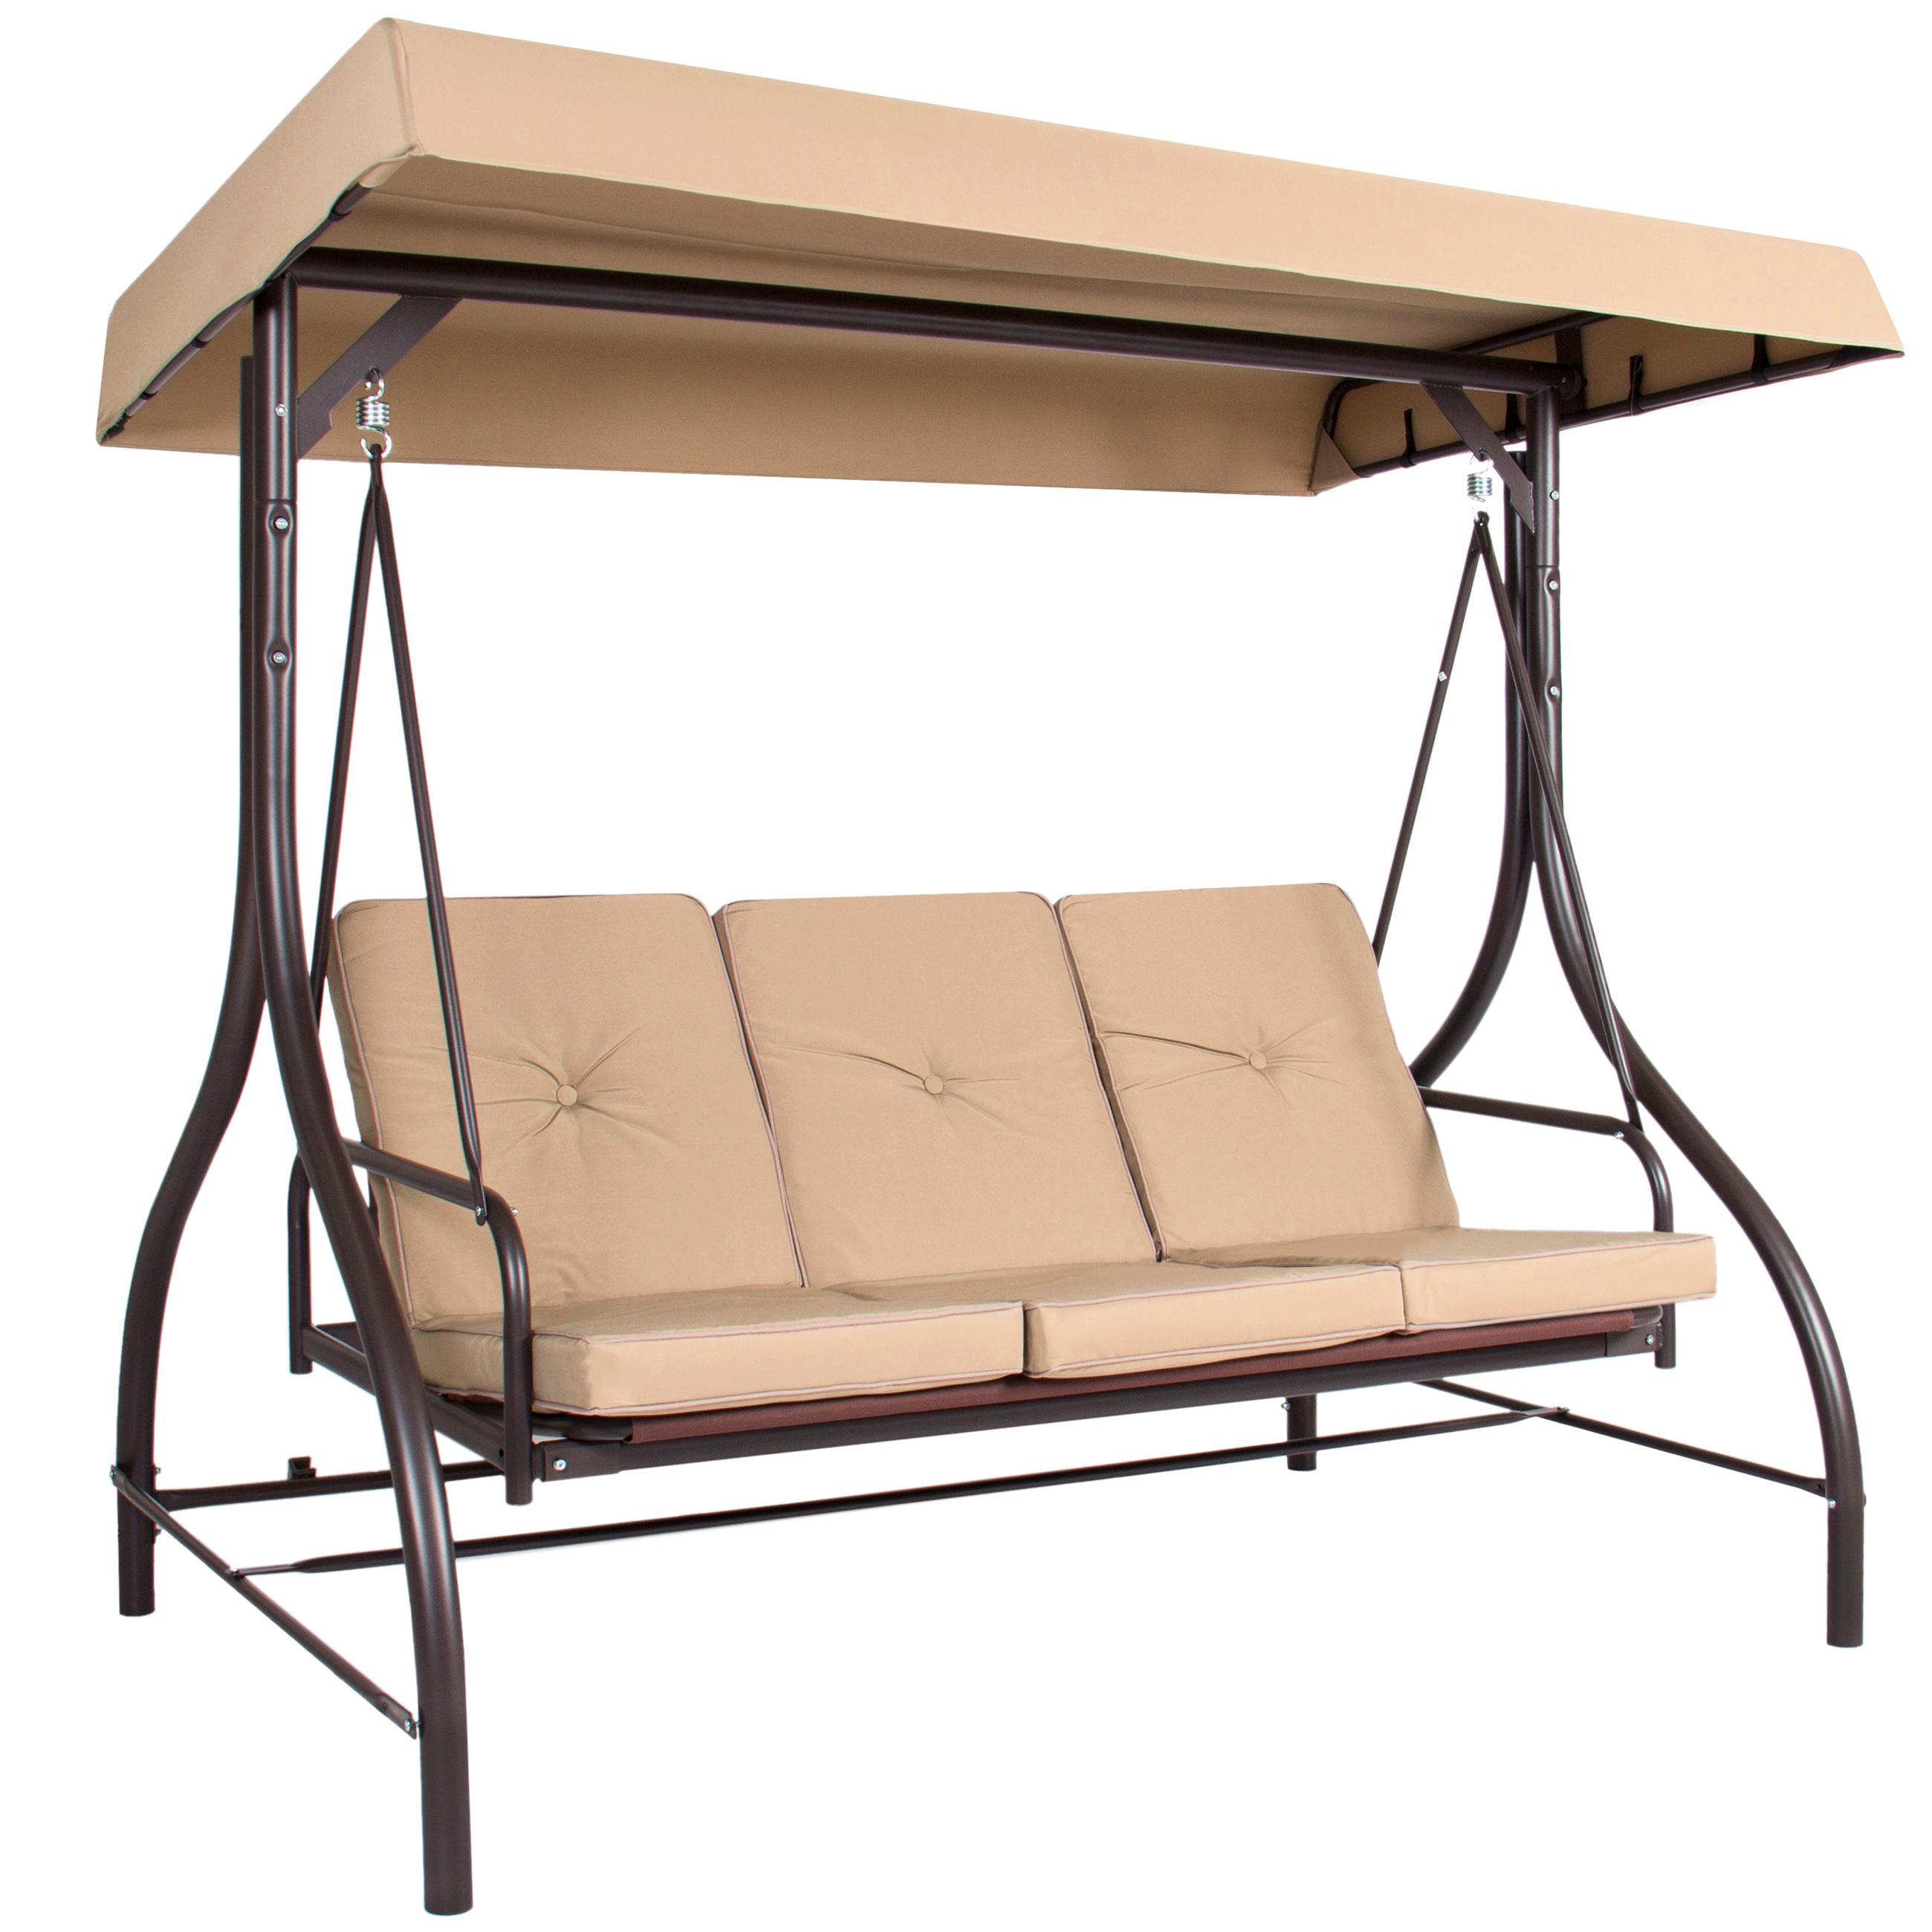 Converting Outdoor Swing Canopy Hammock Seats 3 Patio Deck Furniture - Tan